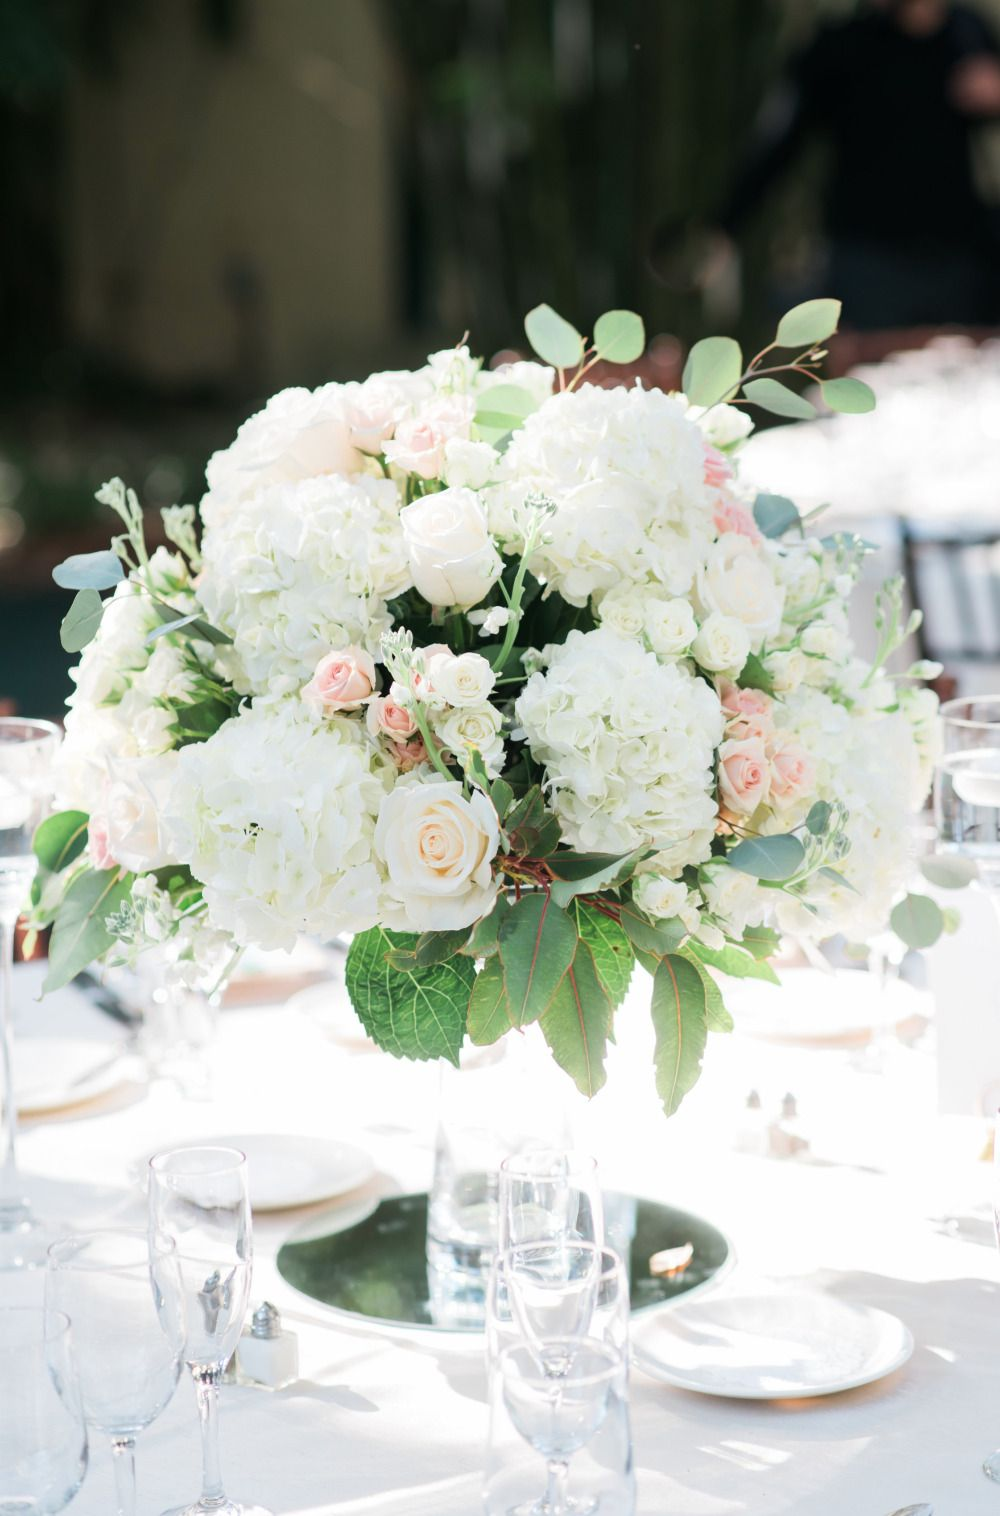 Magnificent Roses And Hydrangeas Wedding Centerpieces Photo ...